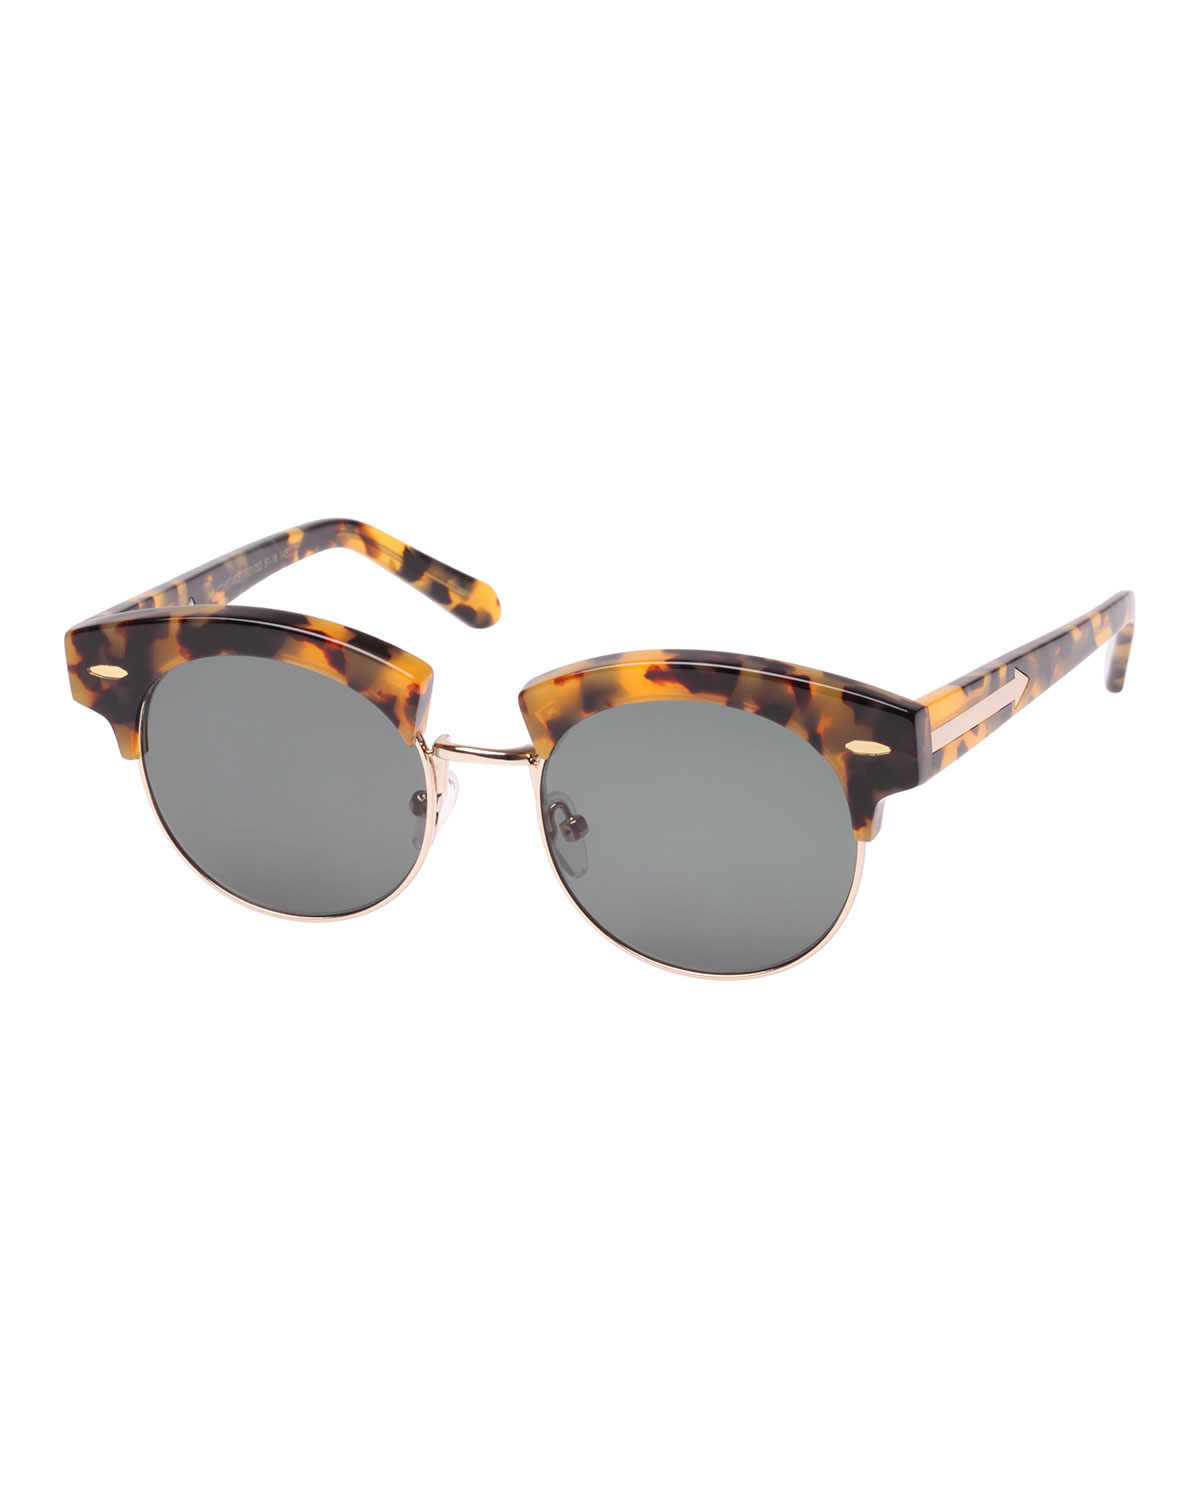 The Constable 51Mm Sunglasses - Crazy Tortoise, Brown Pattern